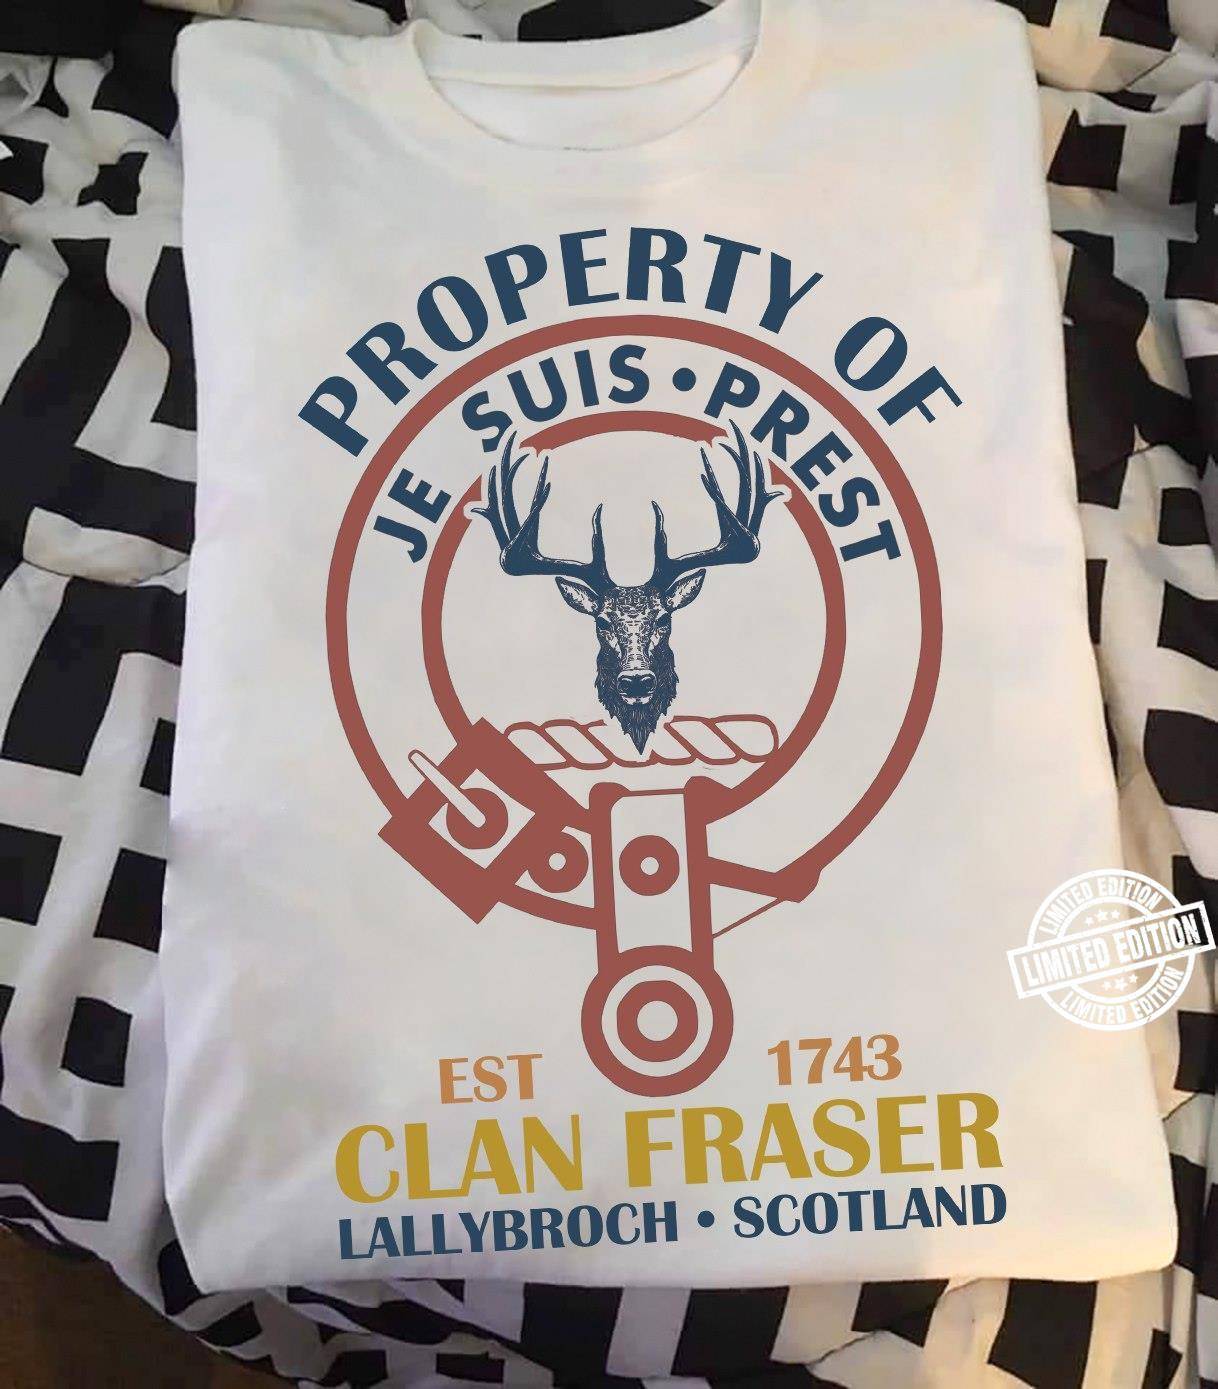 Property of je suis prest clan fraser lallybroch scotland shirt